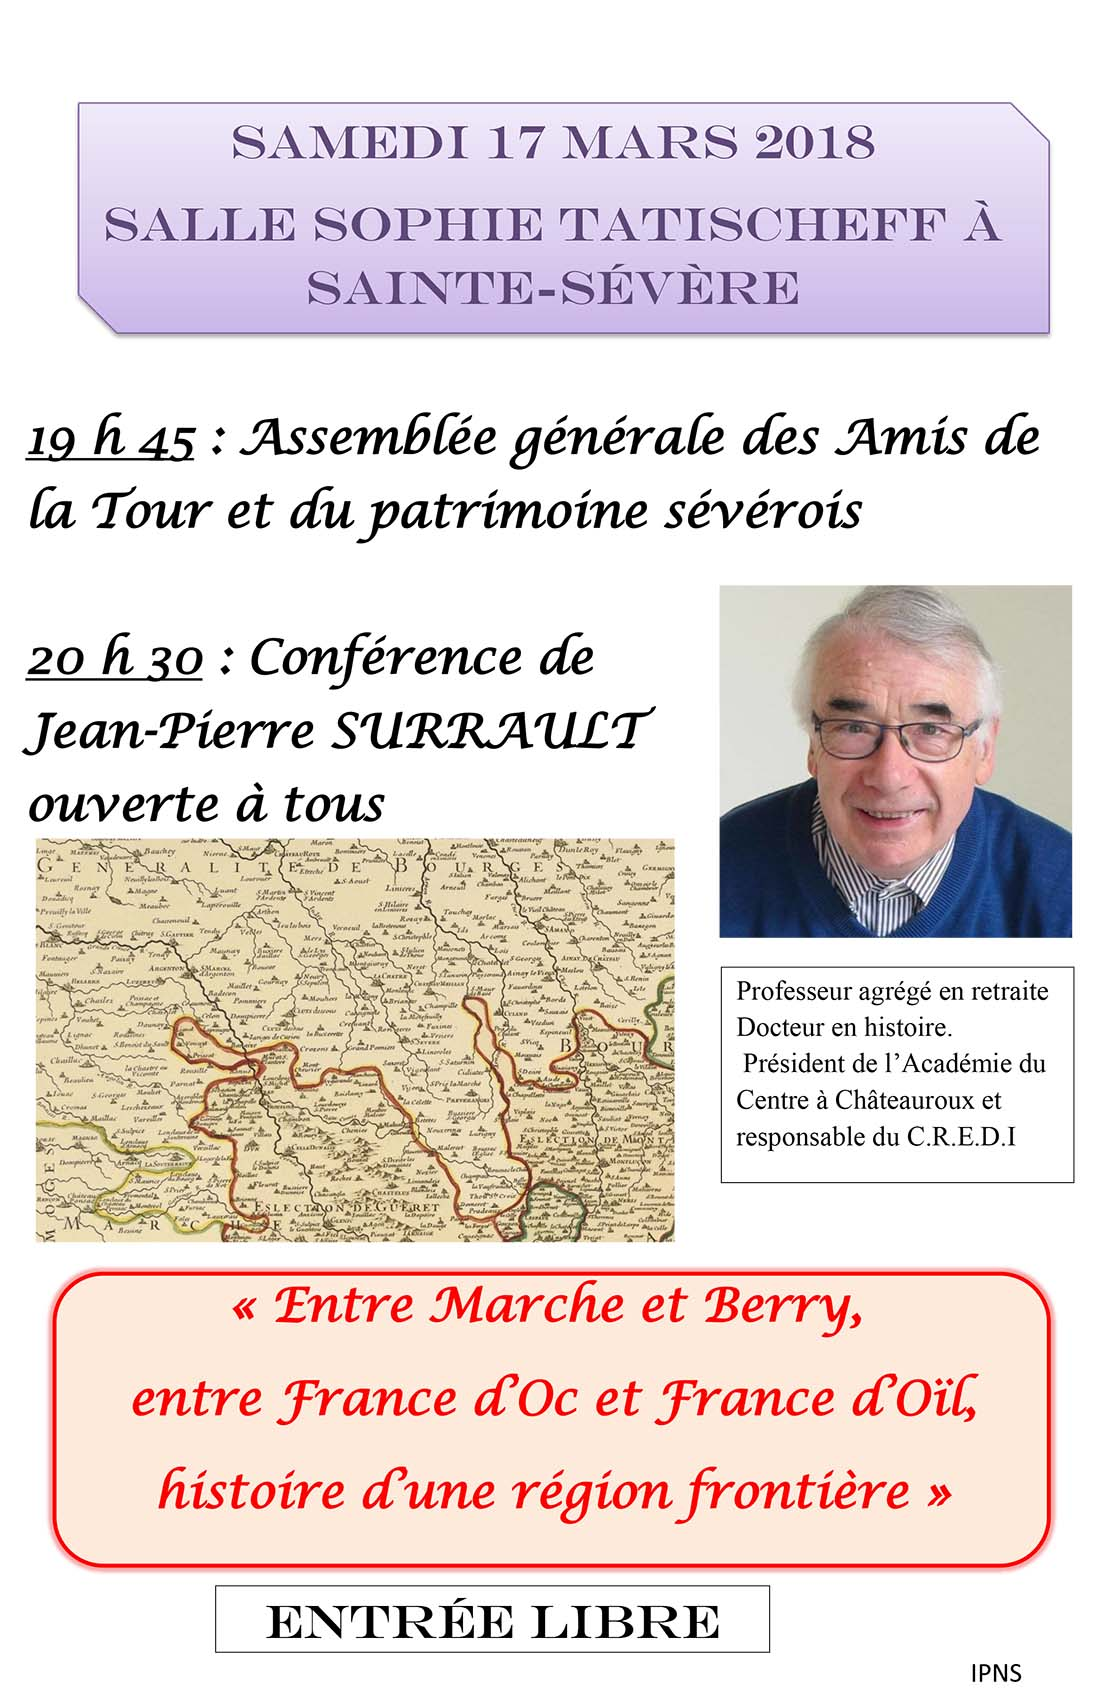 Conference-Surrault-sainte-severe